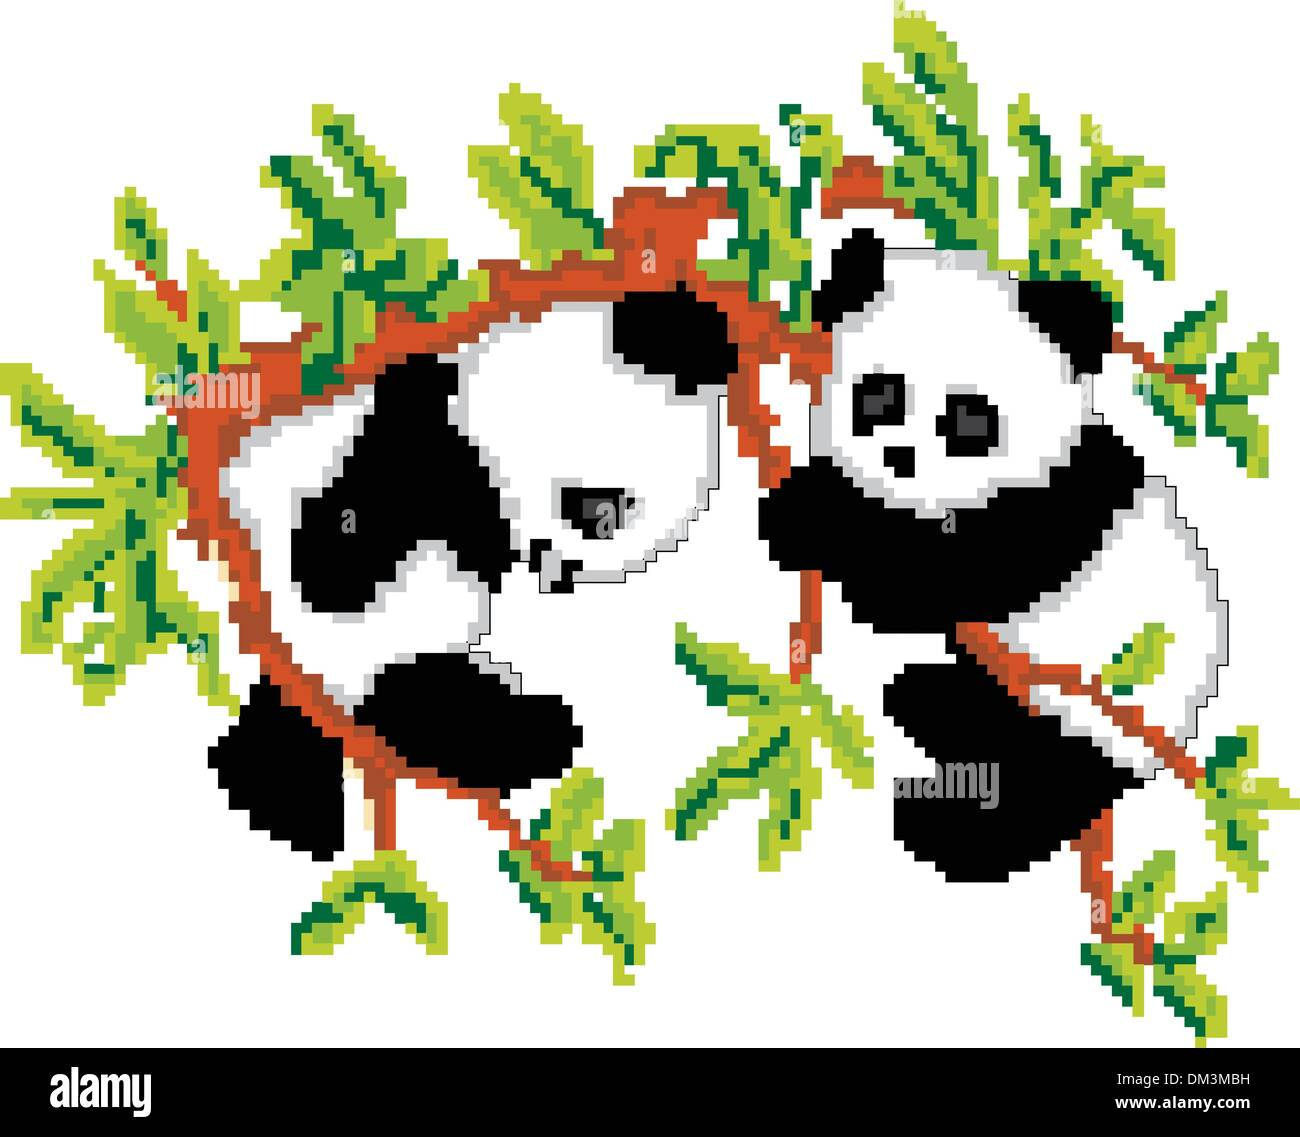 Panda Hug Stock Photos Panda Hug Stock Images Alamy